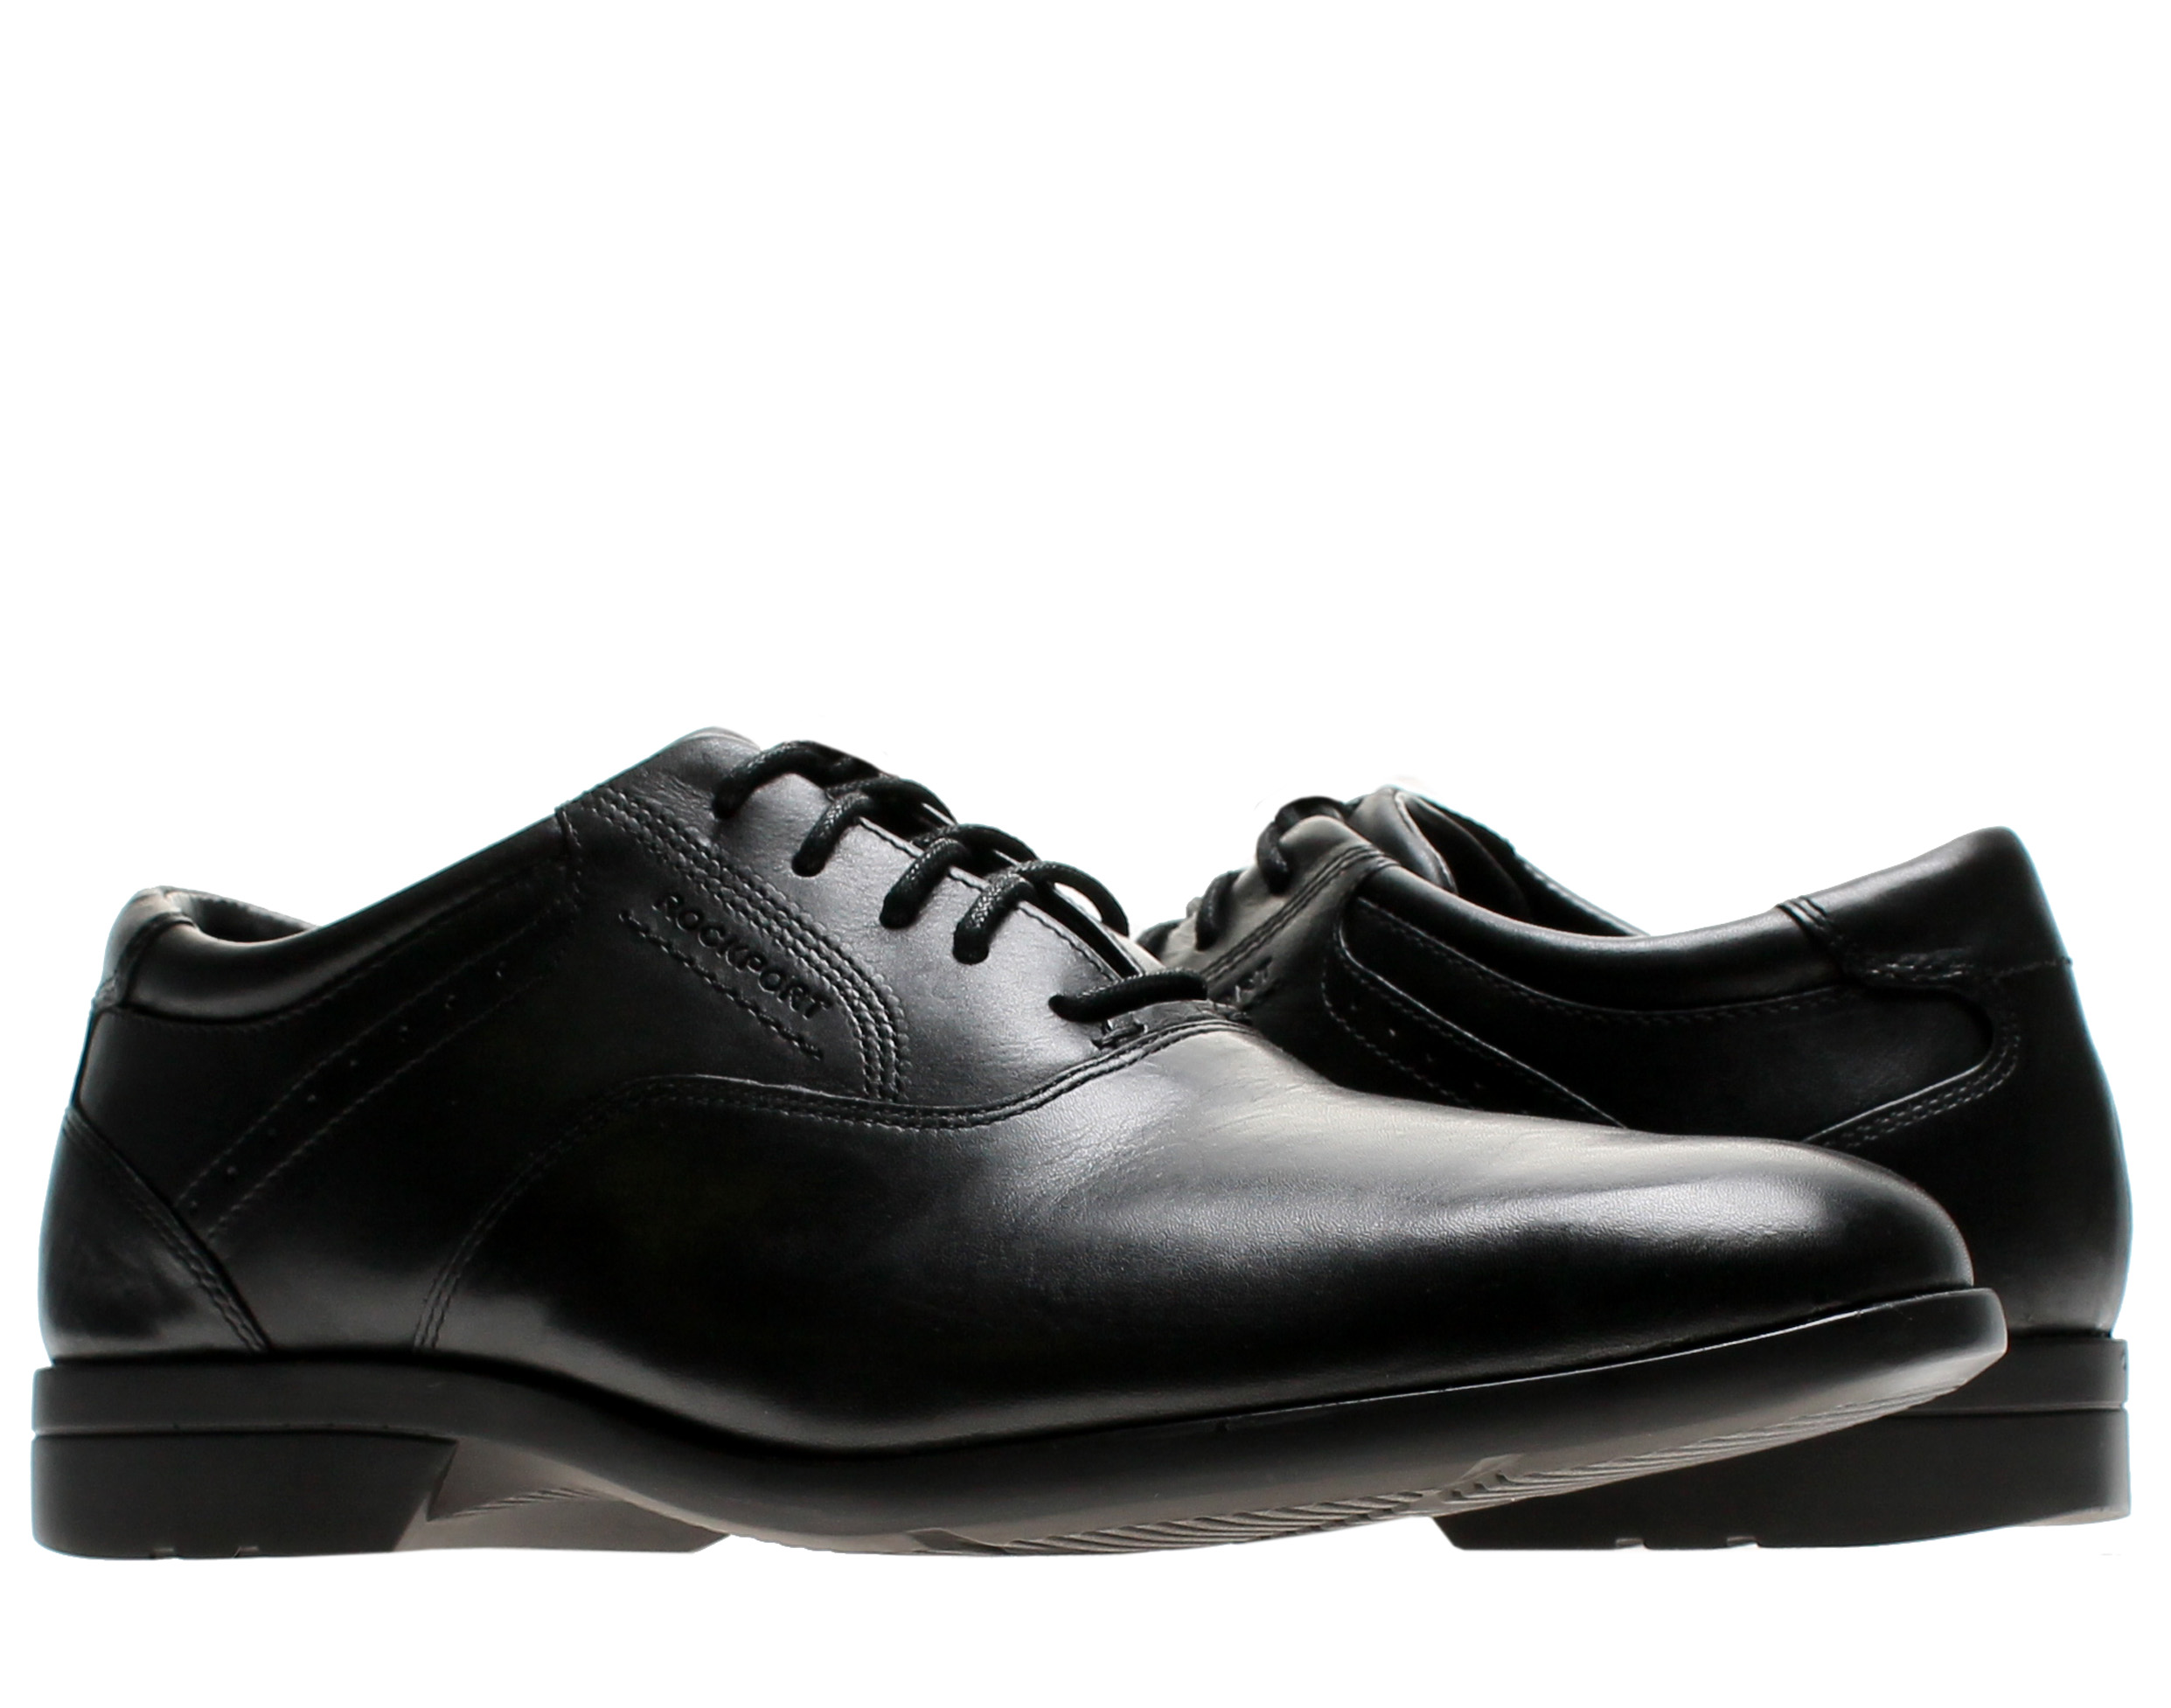 Rockport Business Lite Plain Toe Black Men's Dress Shoe K72385 by